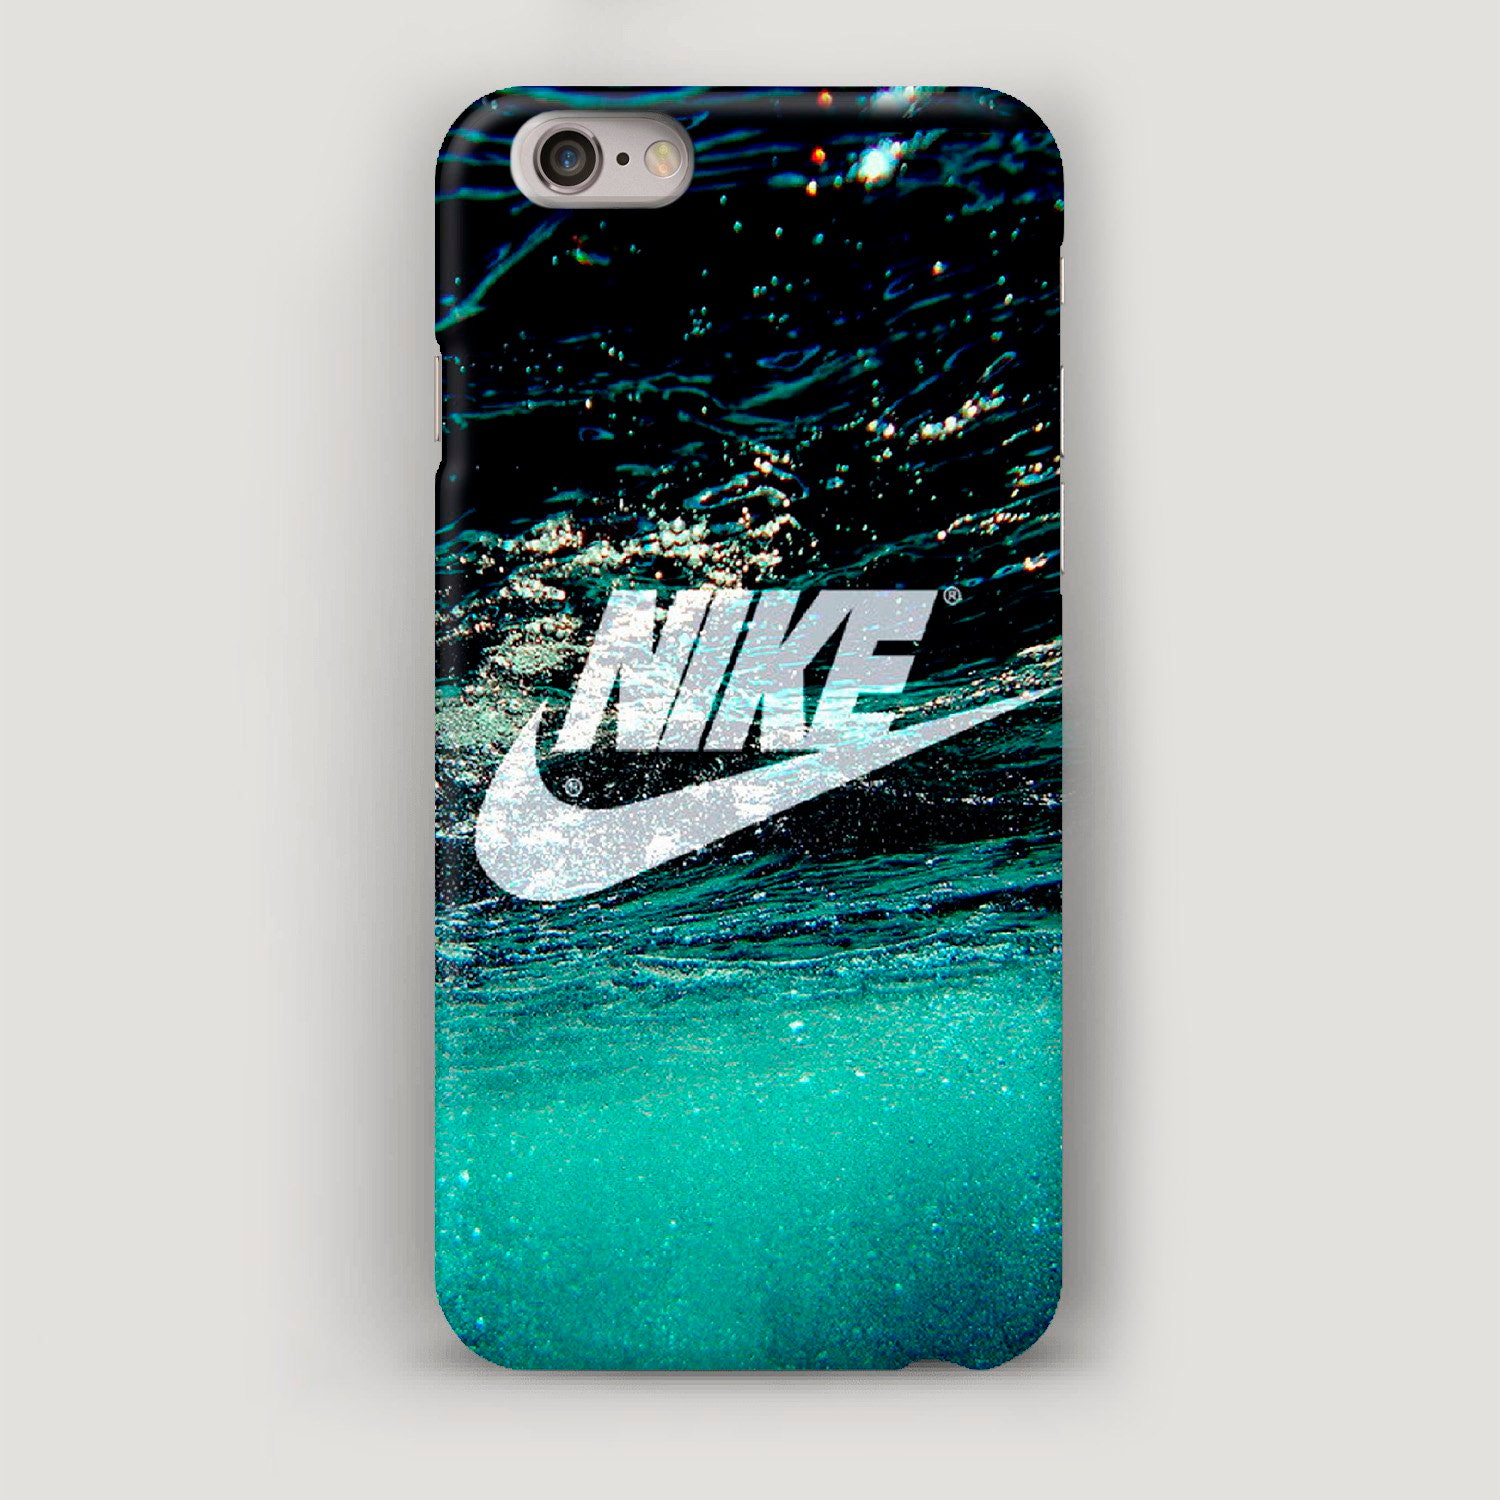 new style cd6c4 86226 Underwater iPhone 6 Case, Nike iPhone 7 Plus Case, iPhone 6S Plus Case,  iPhone 5 Case, iPhone 4 Case, Nike iPhone Cover, Nike Samsung Case